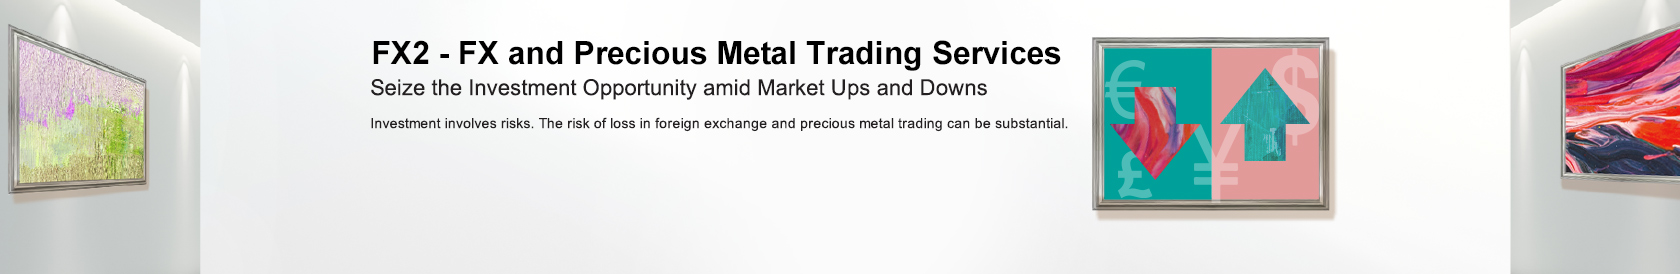 FX2 - FX and Precious Metal Trading Services  Investment involves risks.